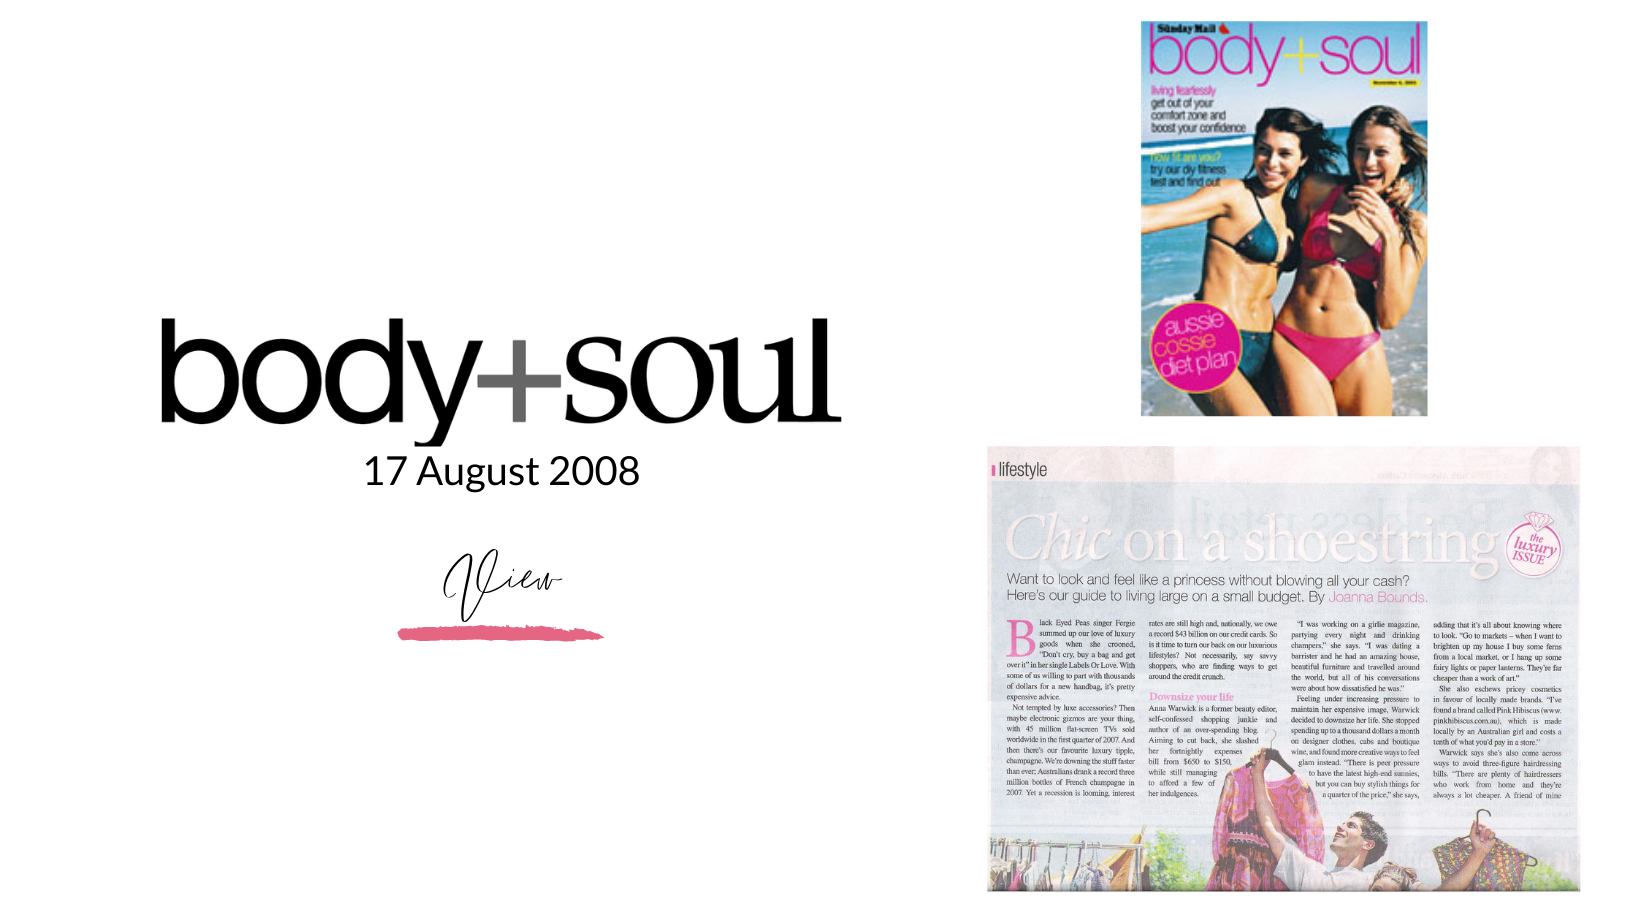 Body & Soul Article dated 17 August 2008